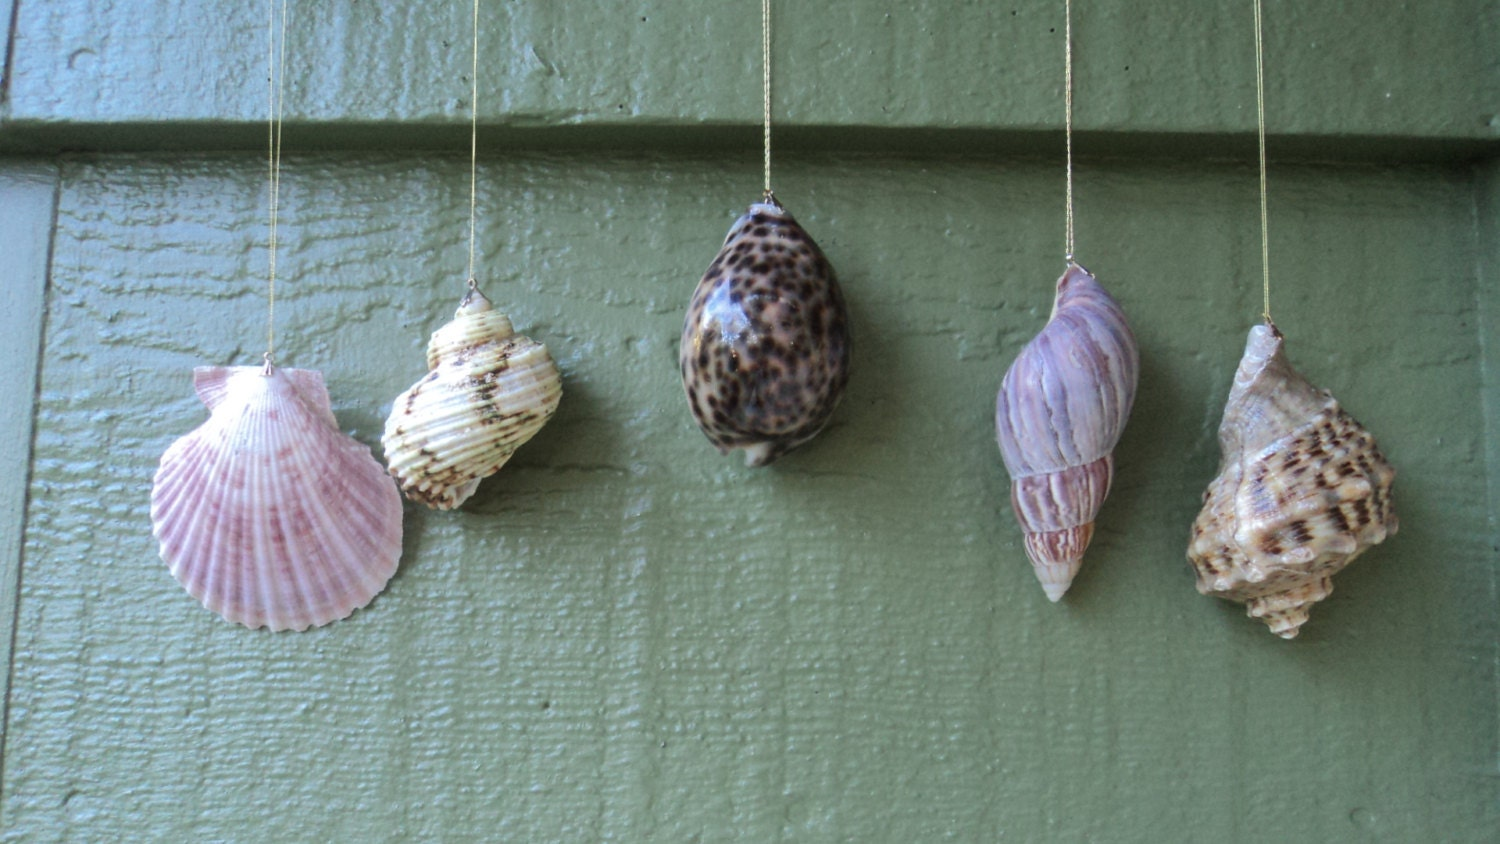 Lot of 5 Natural Seashell Christmas Ornaments,Turbo,Cowrie,Conch & More